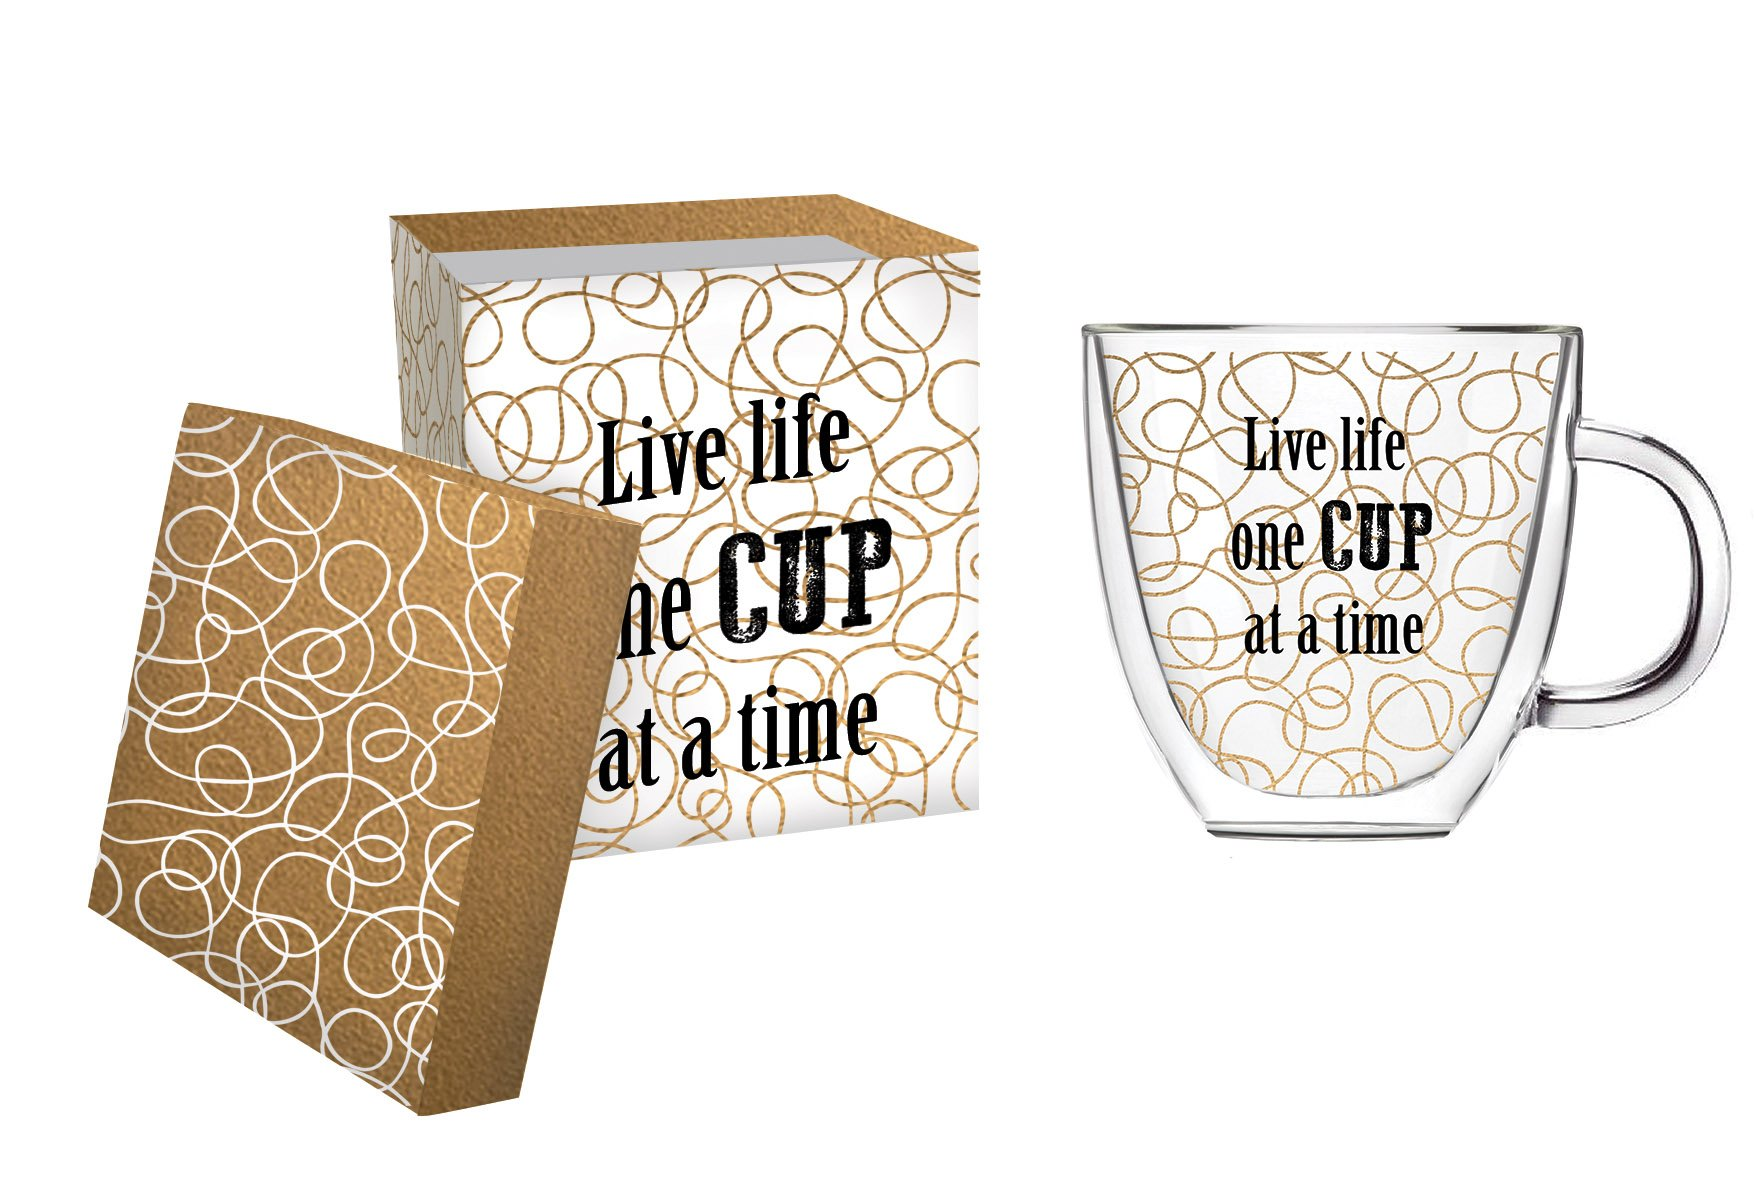 Cypress 3GCC004 Home One Cup at a Time Glass Coffee Cup, 12 oz